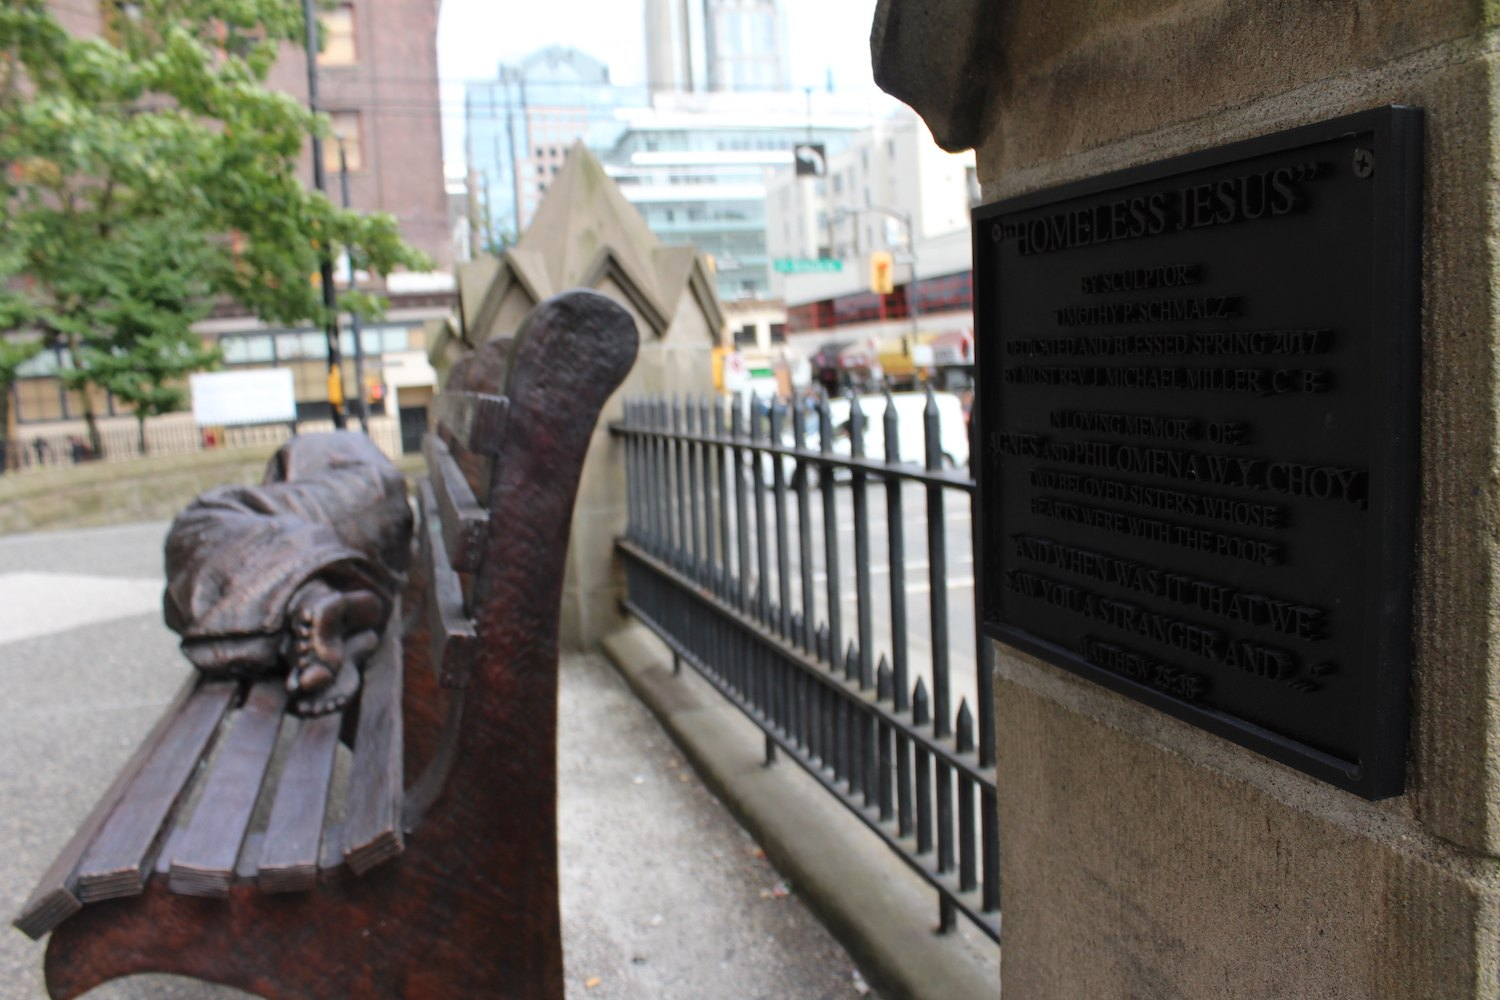 """The plaque reads: """"Homeless Jesus"""" by sculpture Timothy P. Schmalz, dedicated and blessed spring 2017 by most rev J Michael Miller, C B. In loving memory of Agnes and Philomena W. Y. Choy, two beloved sisters whose hearts were with the poor. """"And when was it that we saw you a stranger and..."""" Matthew 25:36 (Chandler Walter/Daily Hive)"""